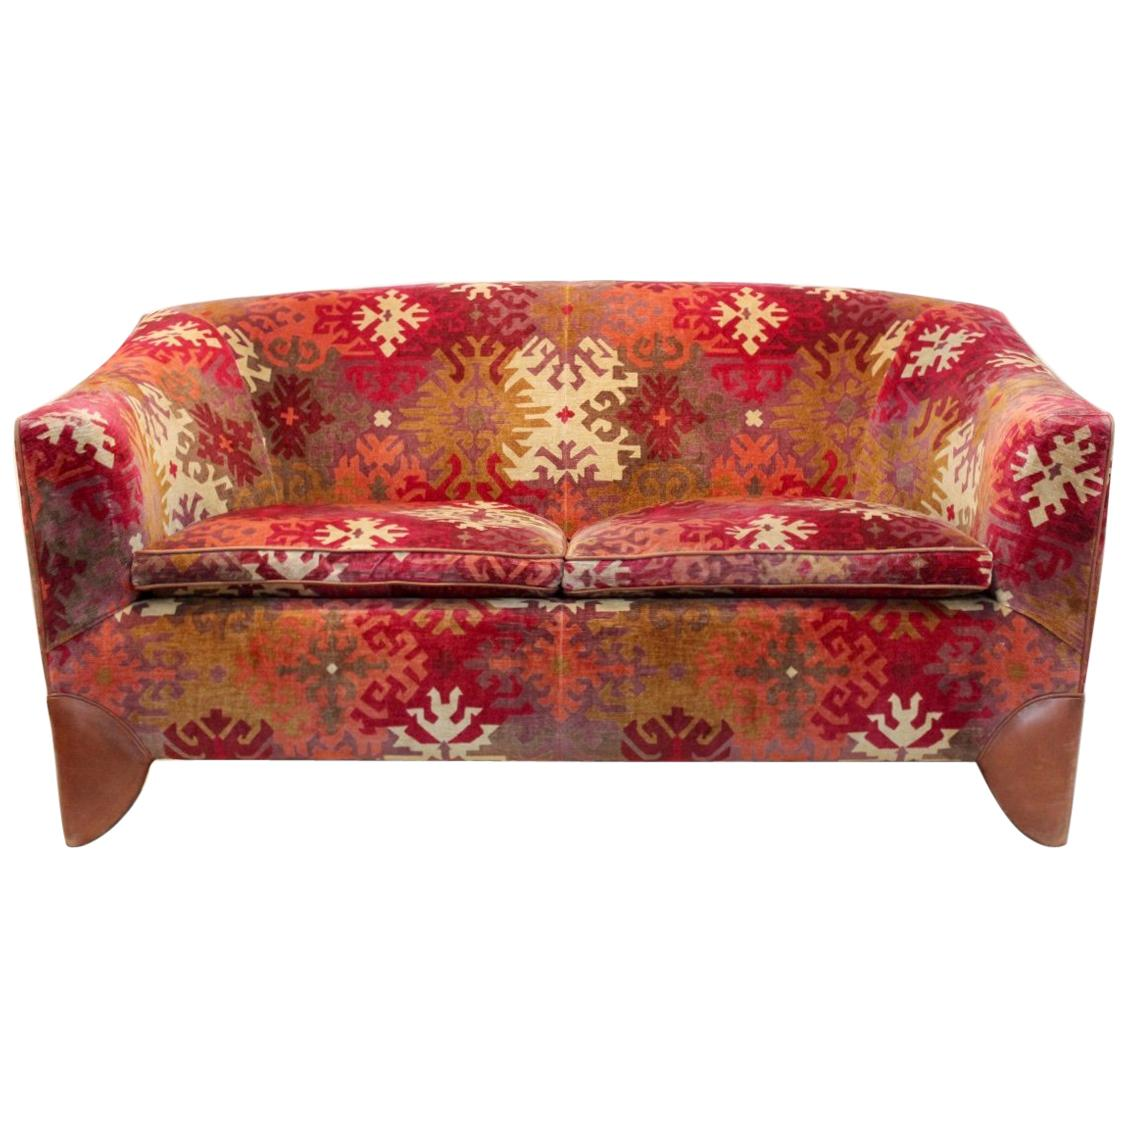 Dutch Design 2-Seat Sofa with Graphical Print, 1980s